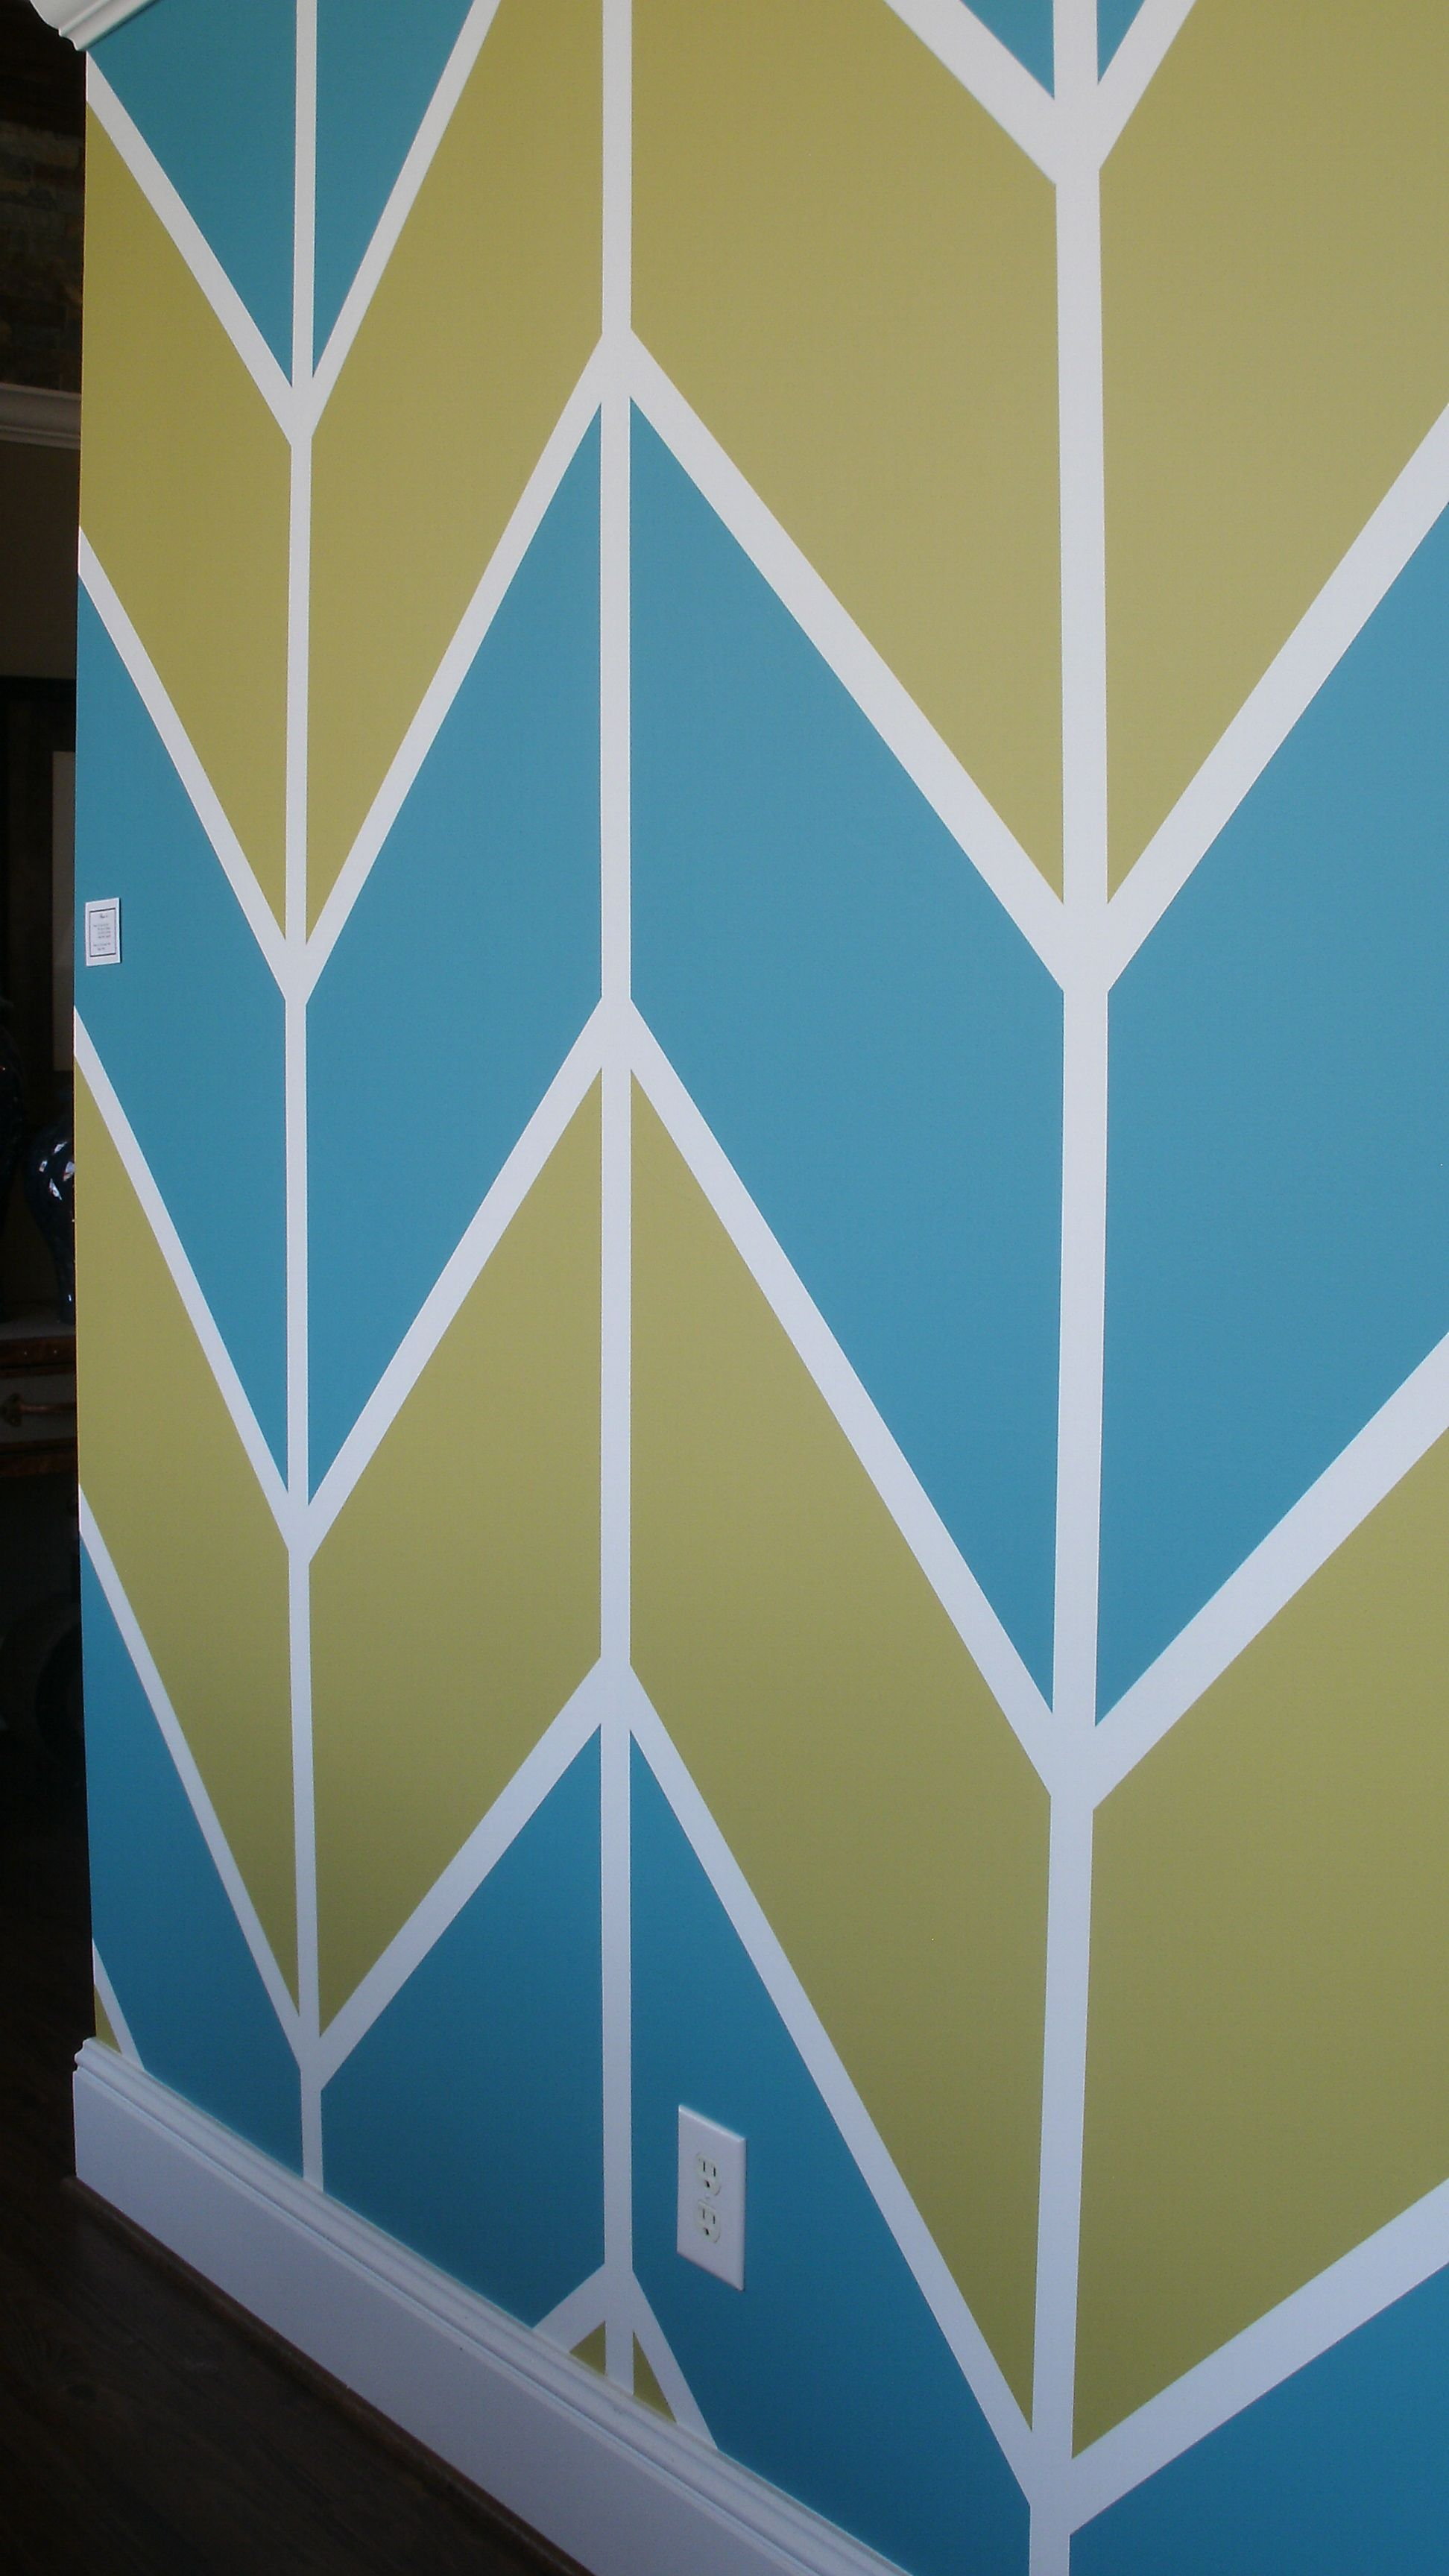 Benjamin Moore Colors Wall Color 741 San Jose Blue And 391 Sweet Vibrations Chevron Pattern